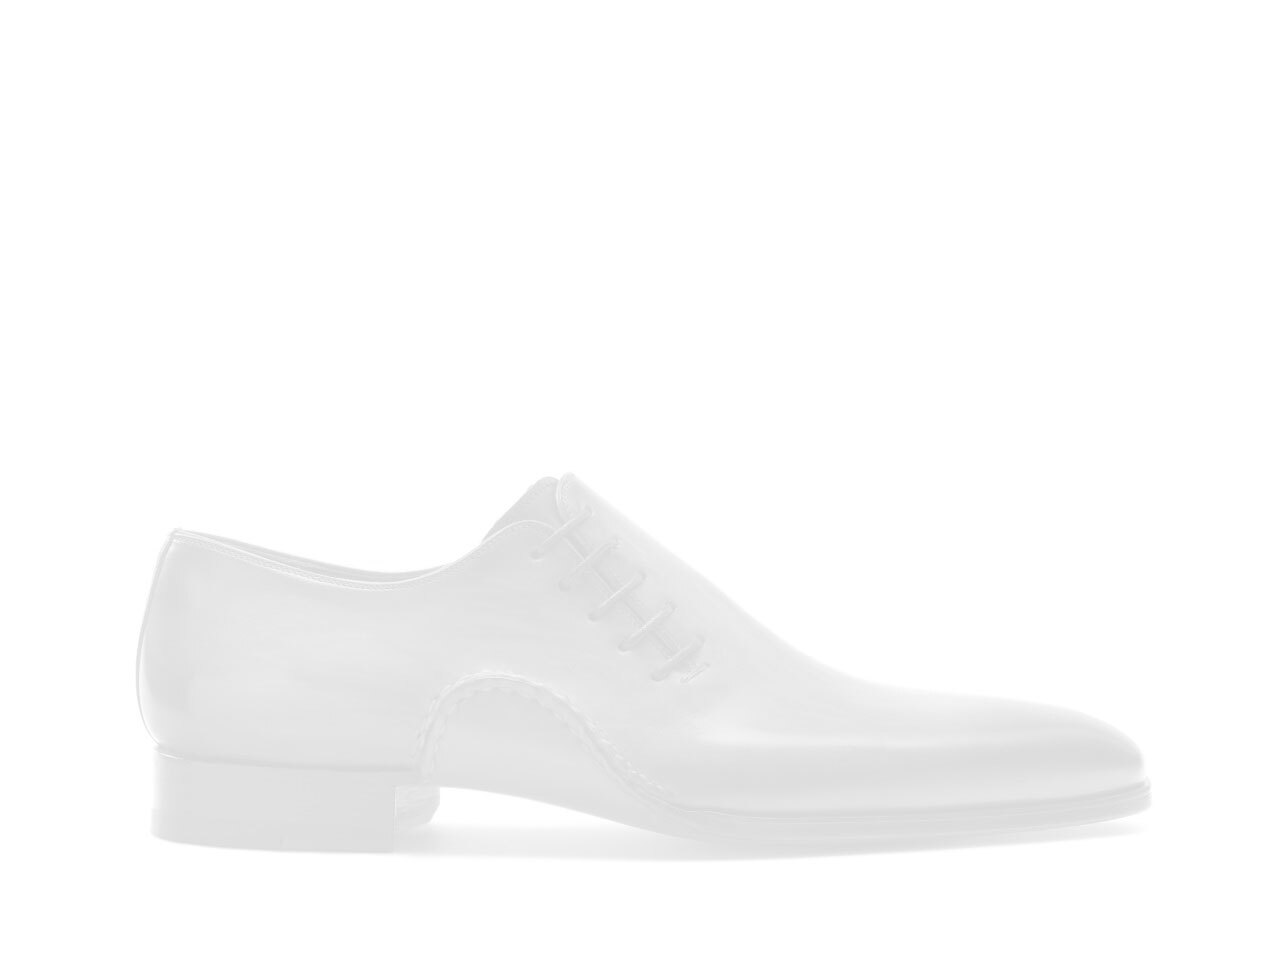 Side view of the Magnanni Ibiza Grey Men's Sneakers